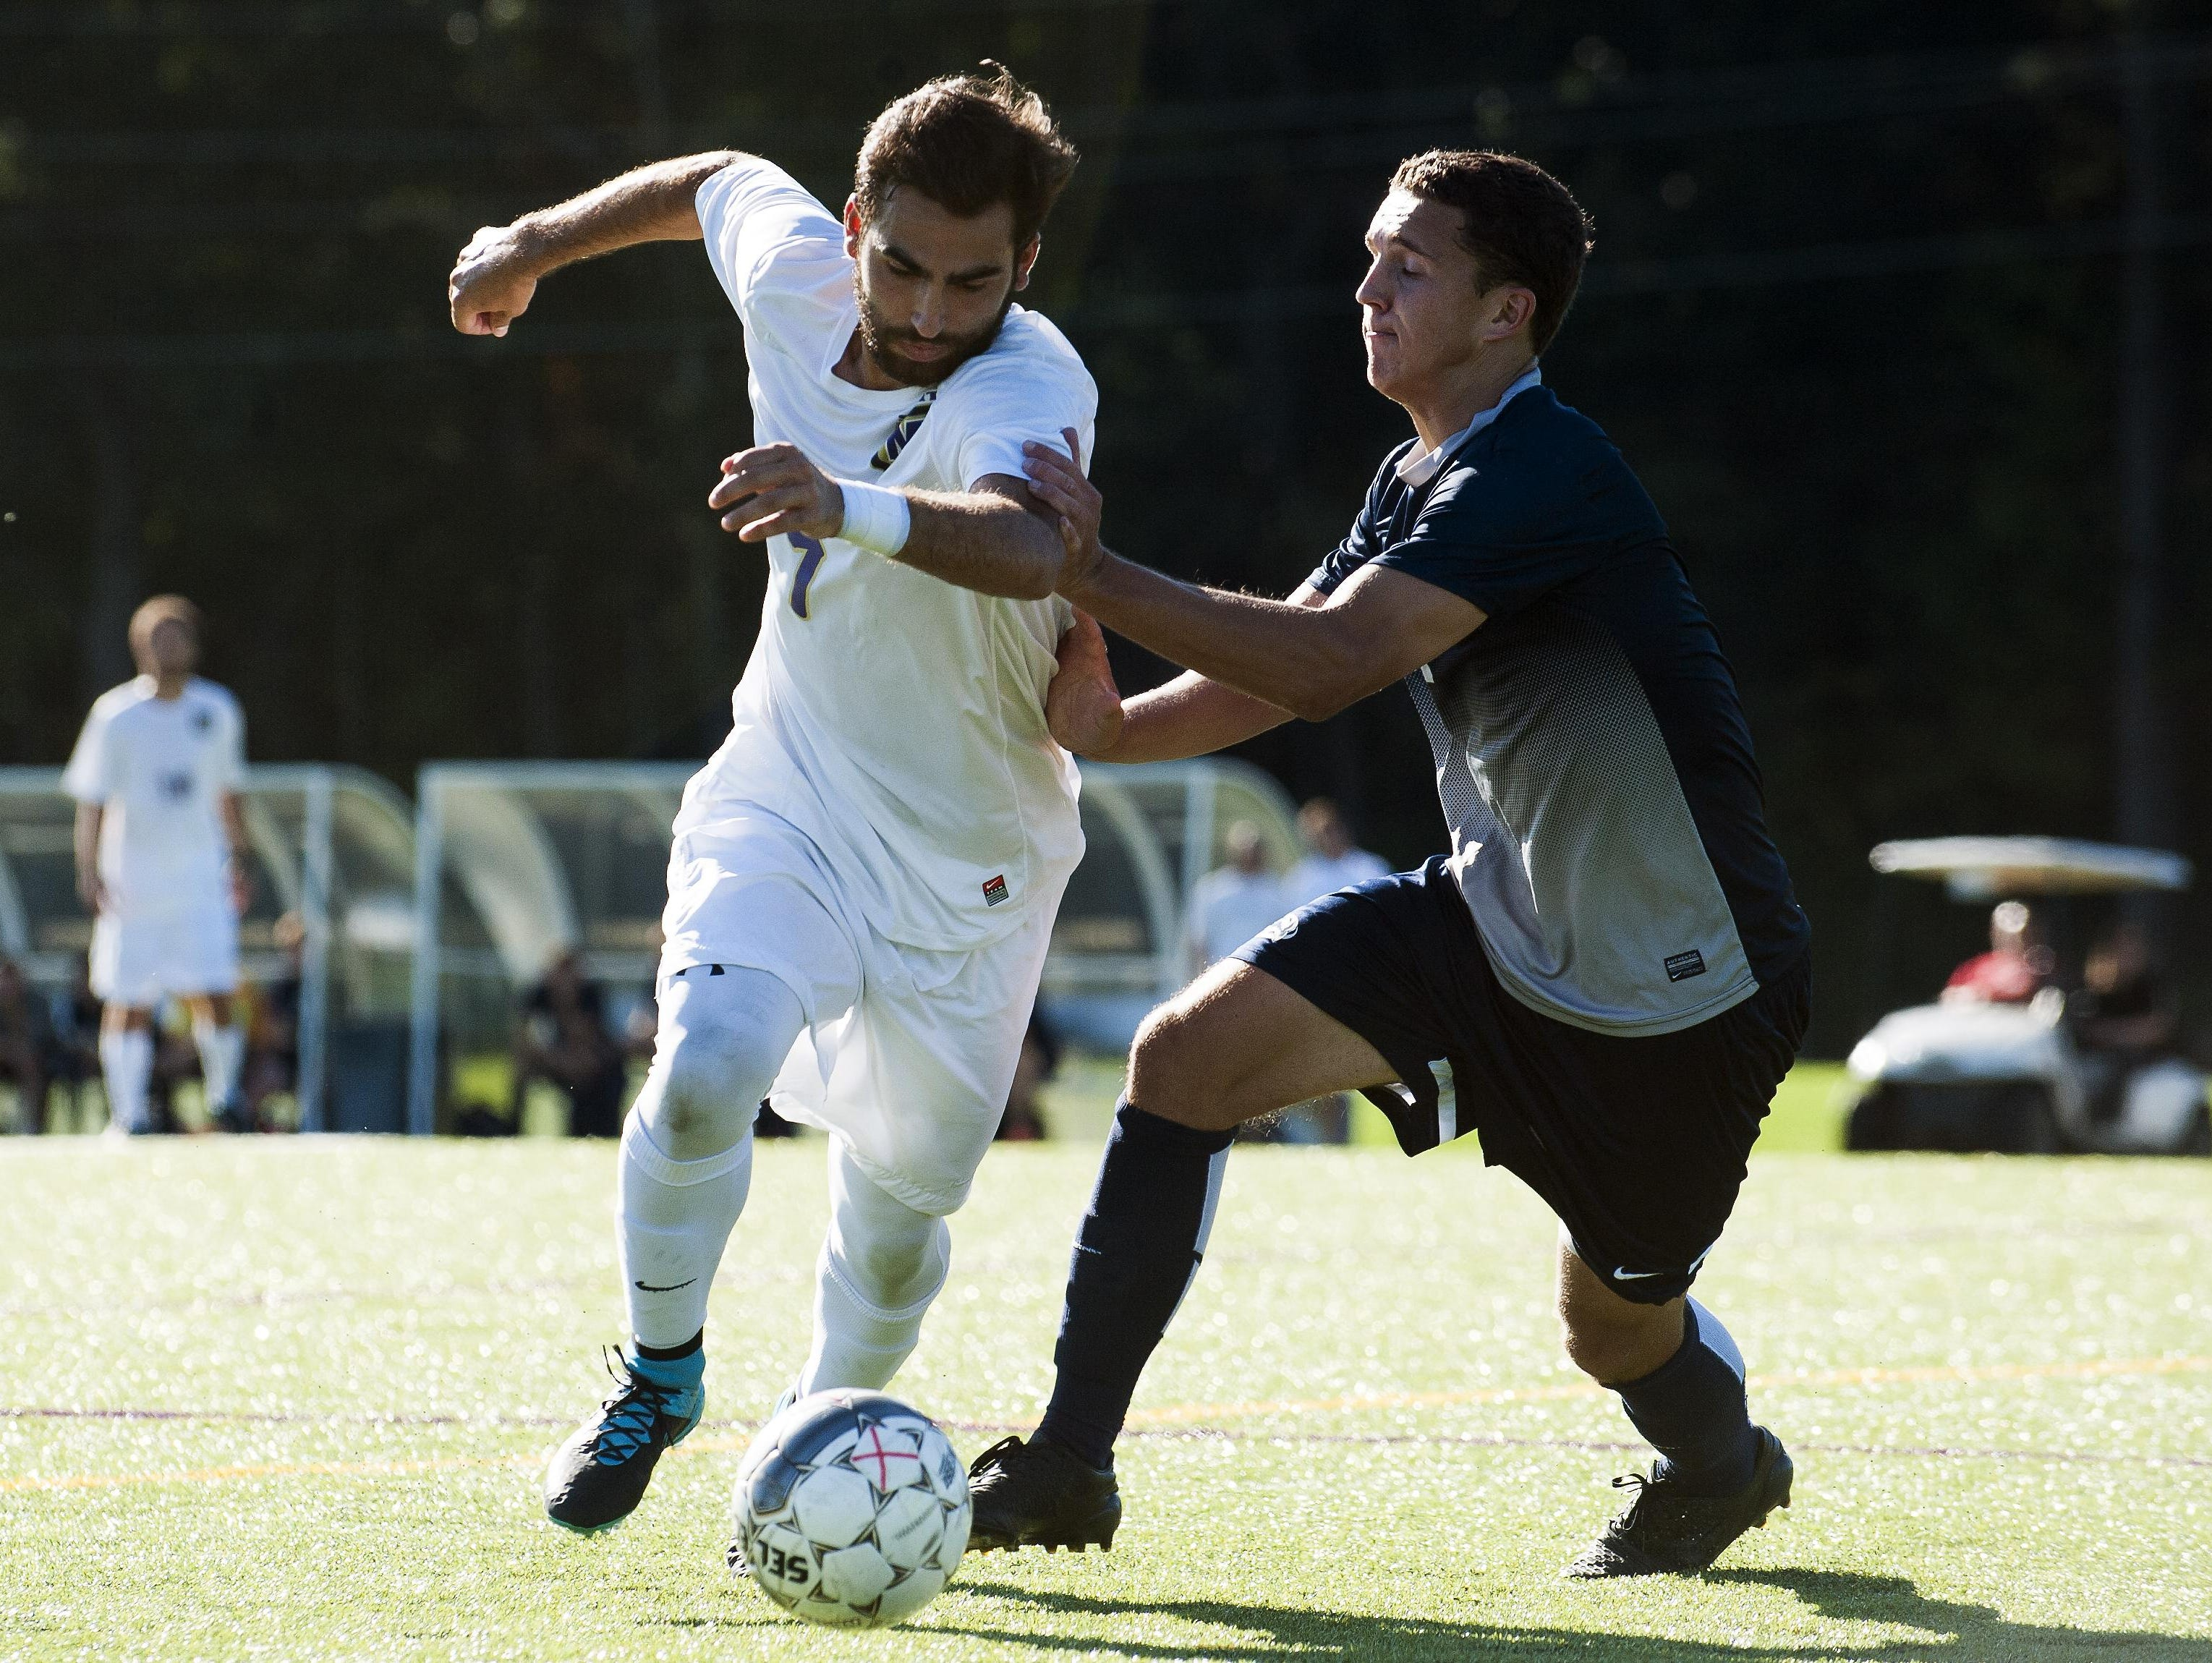 St. Michael's O.J. Rivas (7) runs past St. Anselm's Jack Heintzelman (6) with the ball during the men's soccer game at Duffy Field on Wednesday in Colchester.